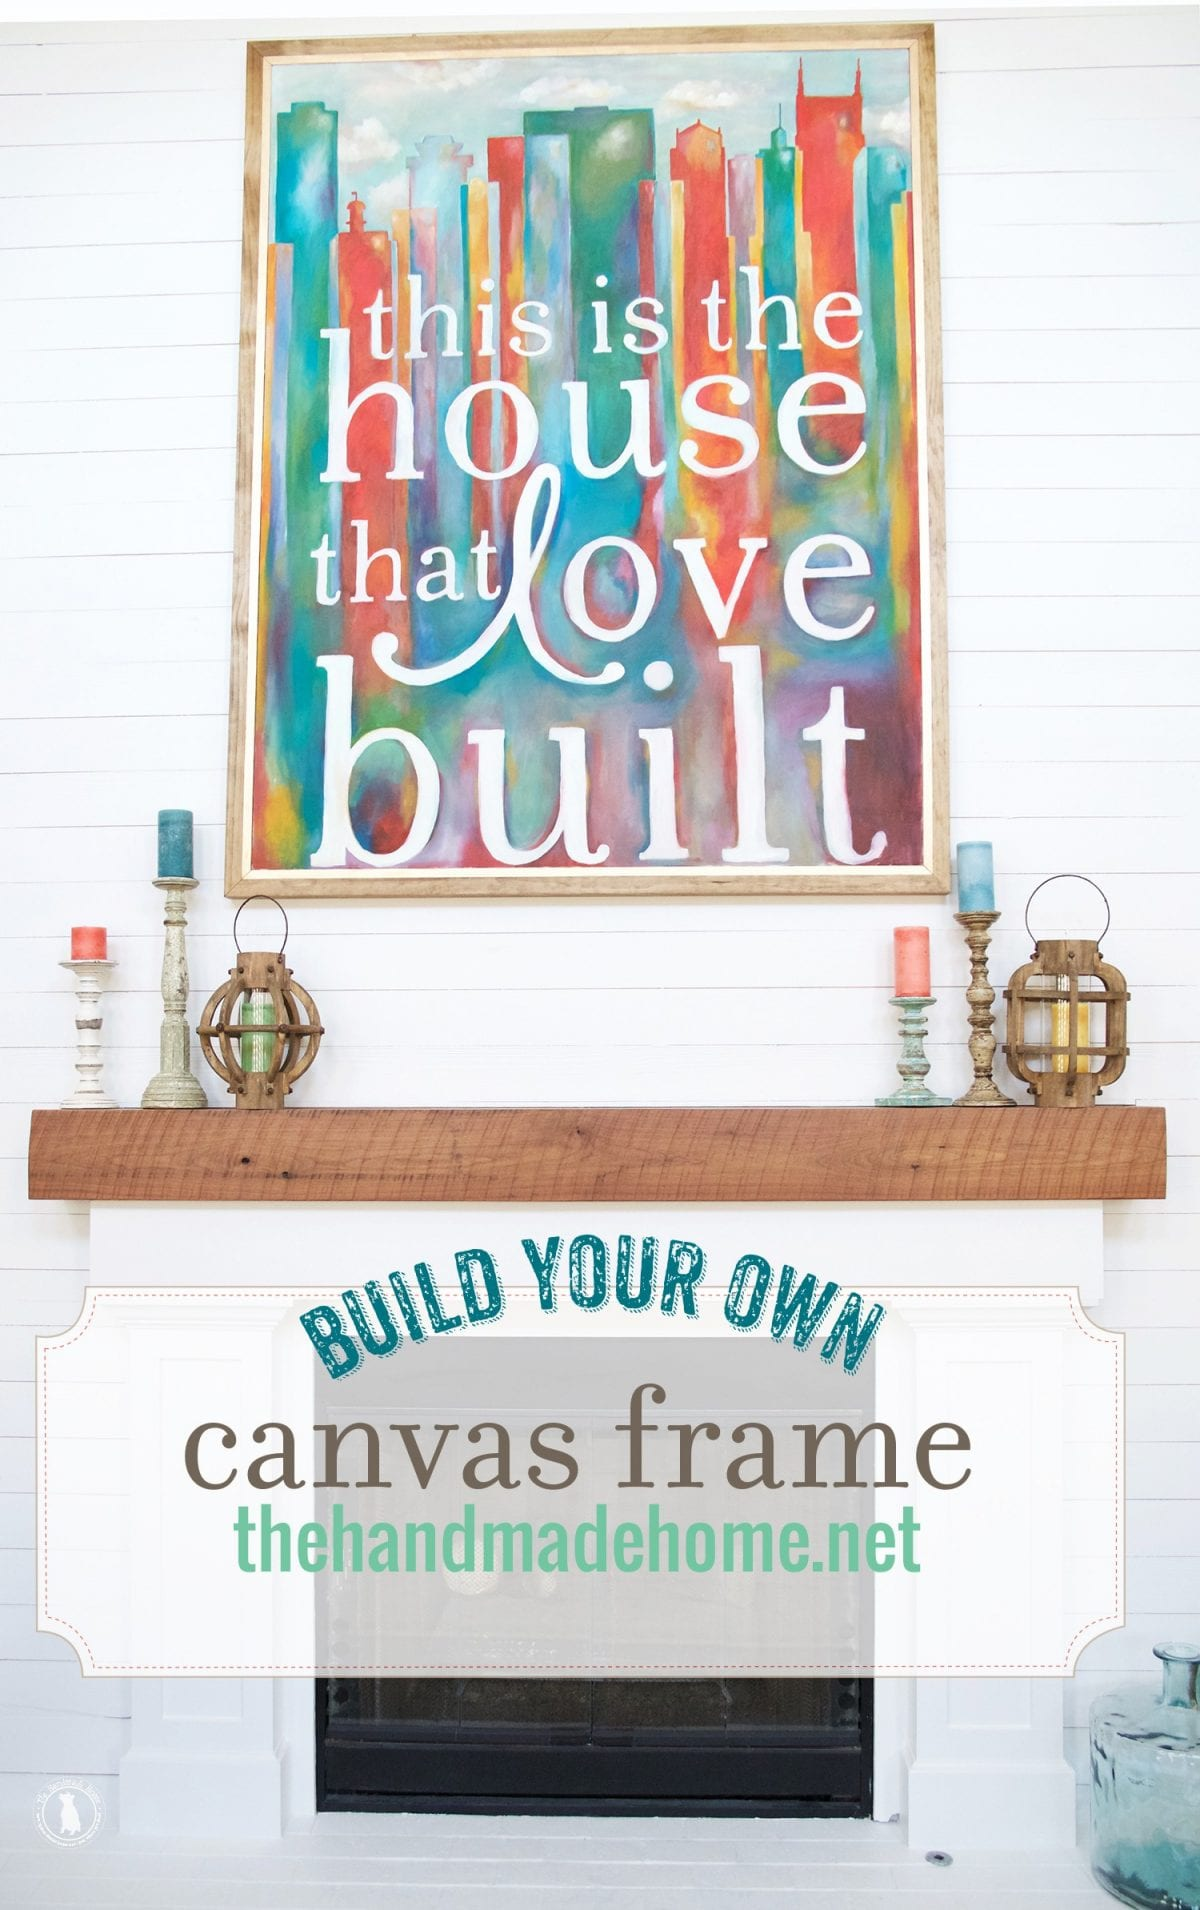 build_your_own_canvas_frame